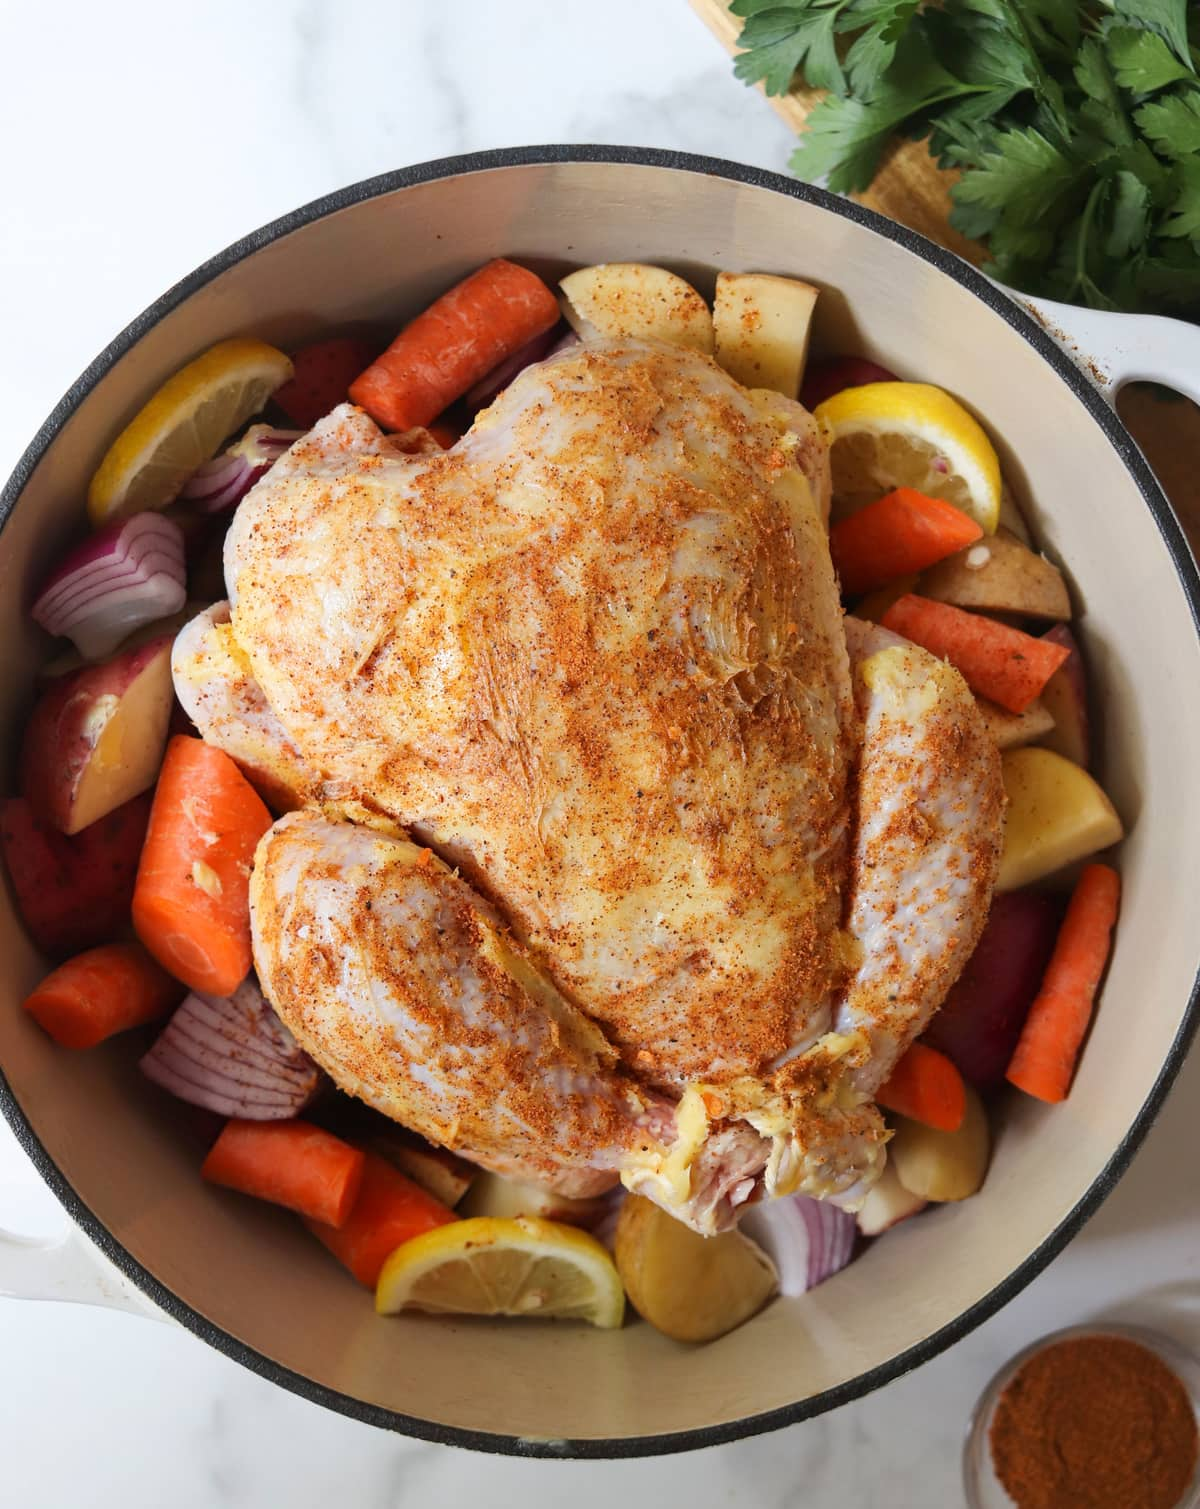 The uncooked chicken resting on top of sliced vegetables inside the dutch oven.